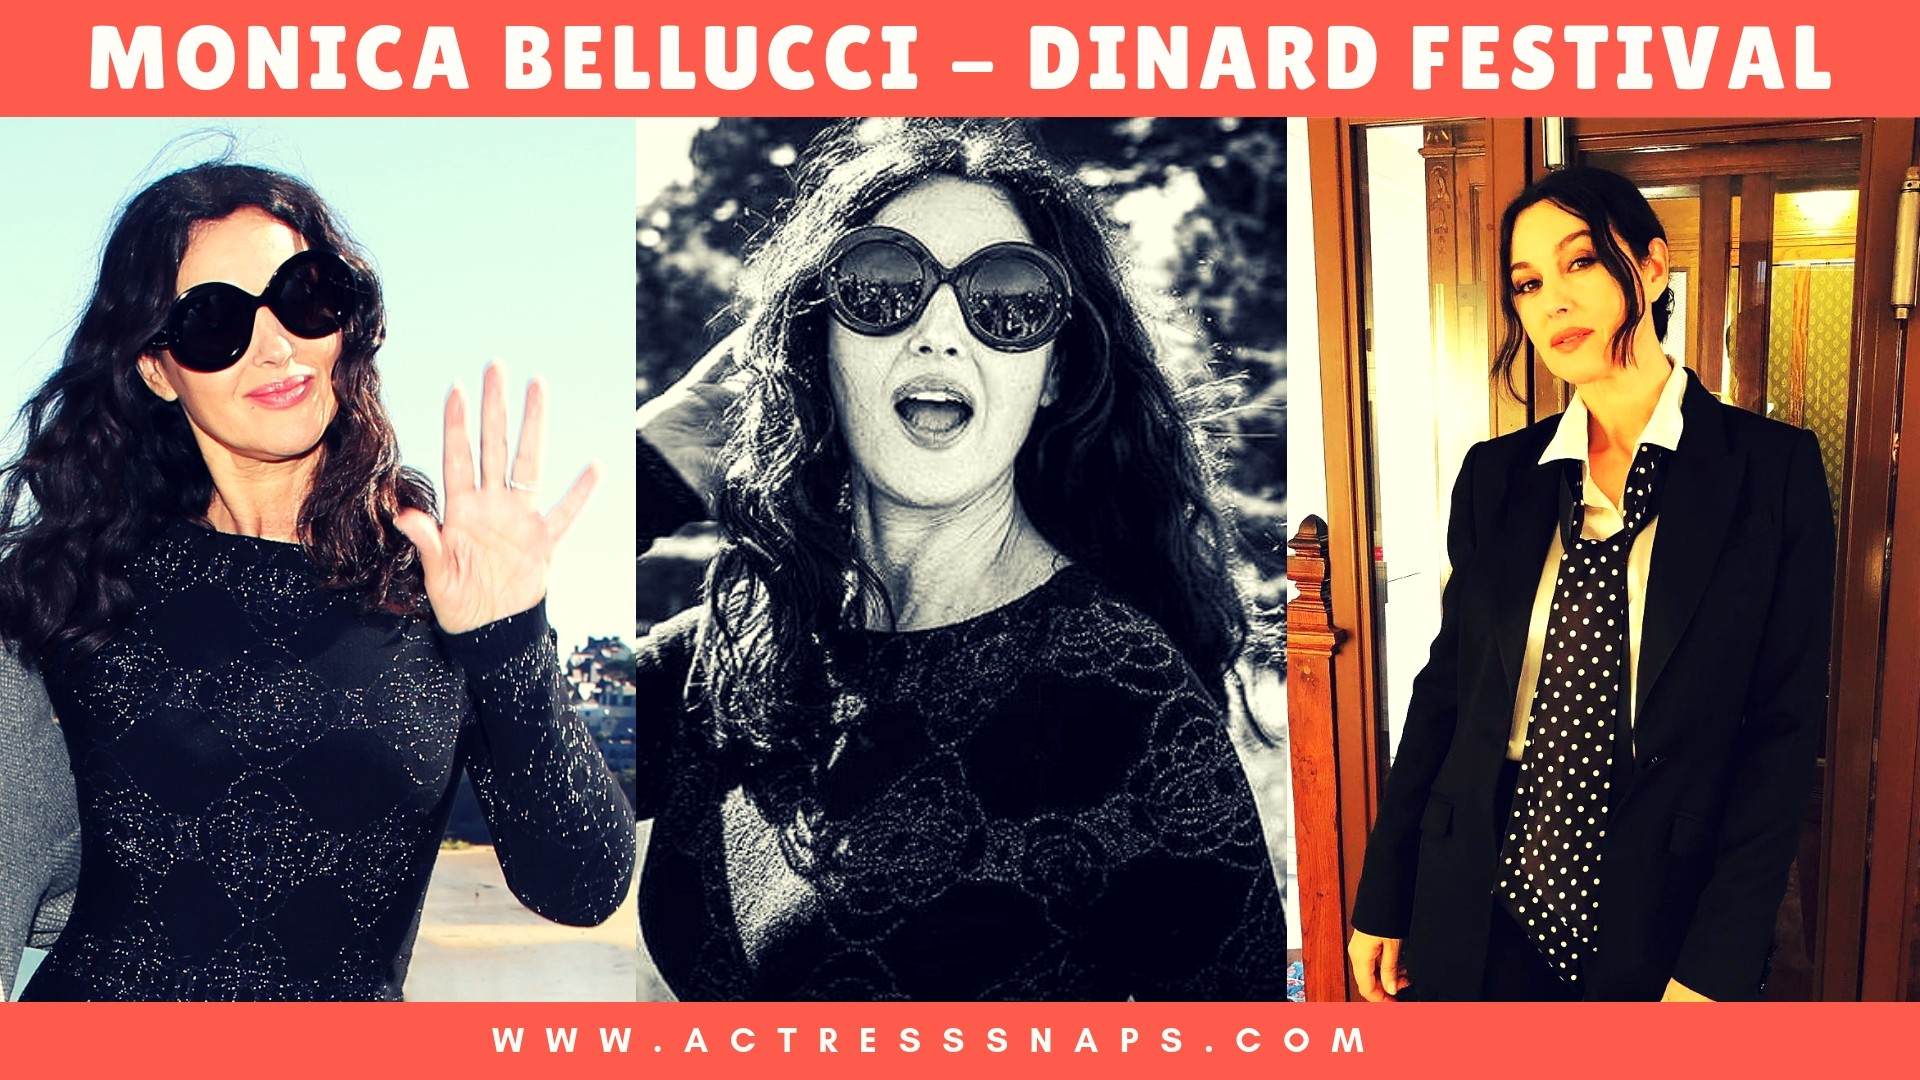 Monica Bellucci at The Dinard Film Festival Pictures #monicabellucci #bellucci